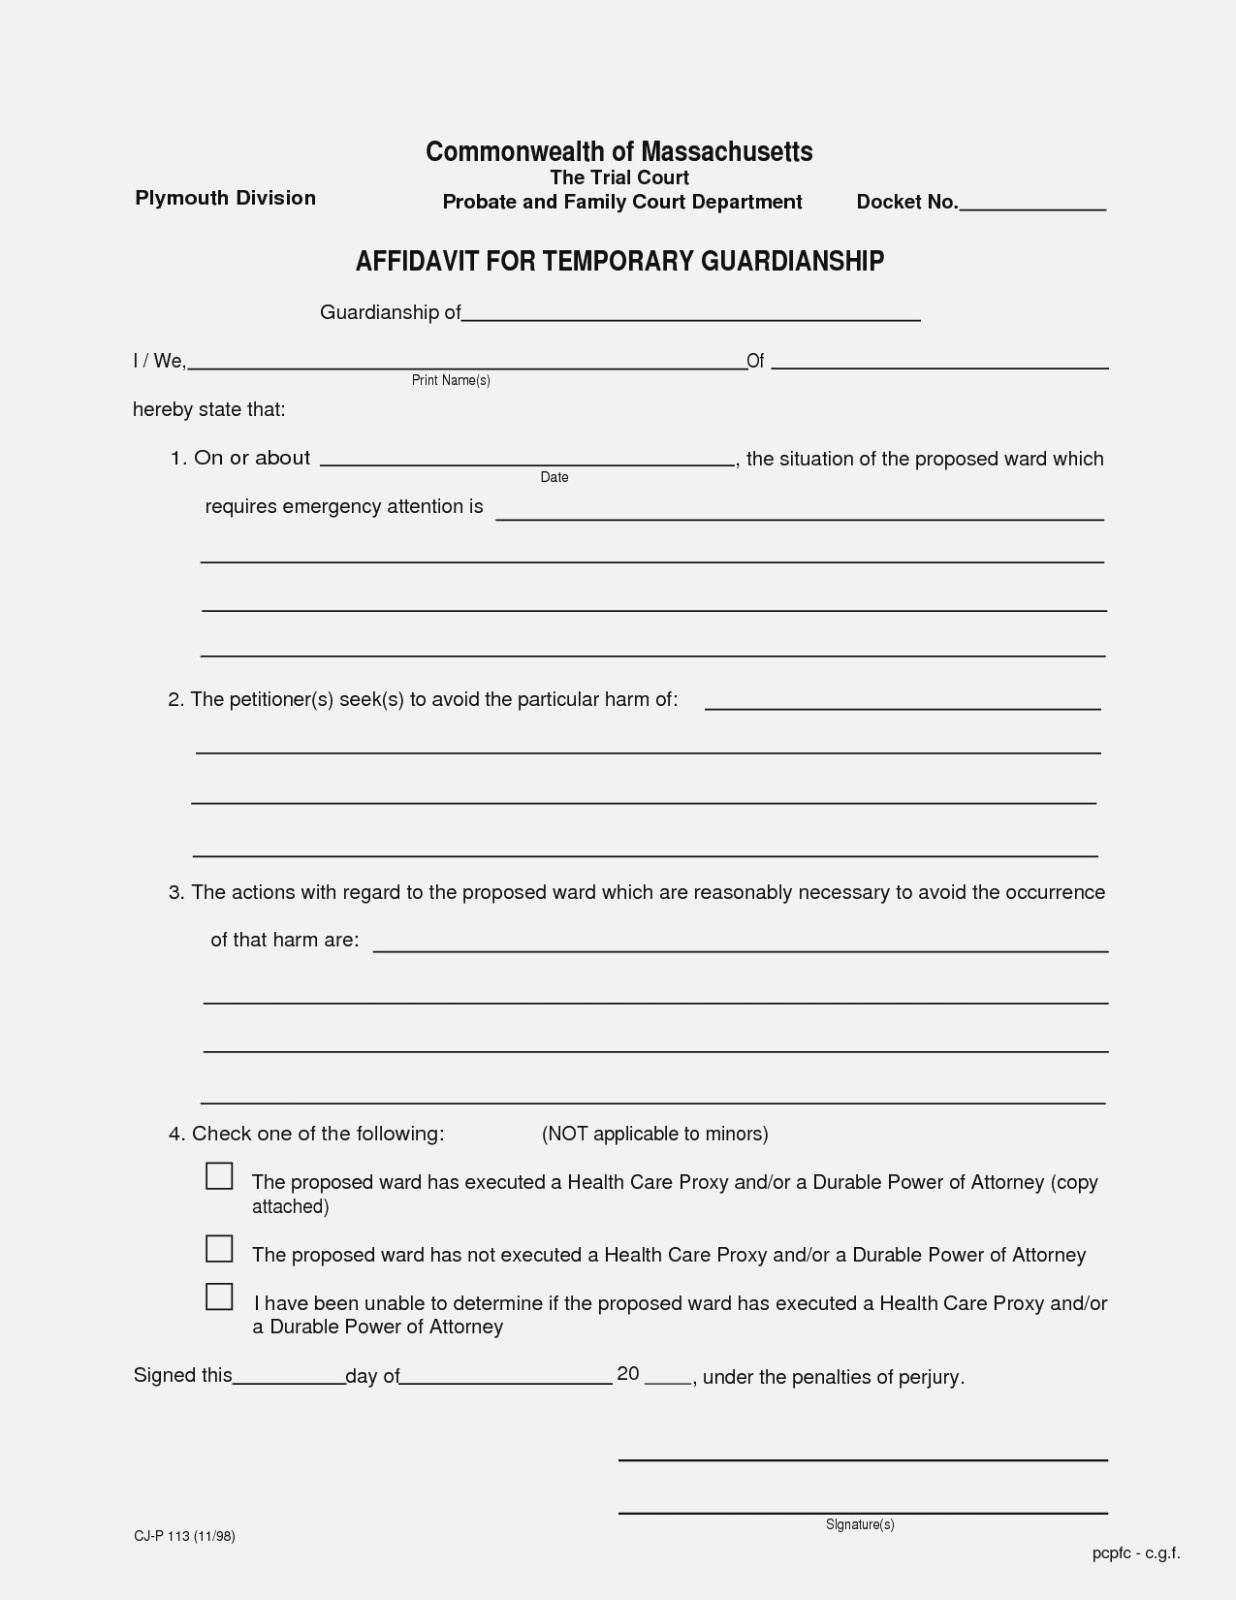 Ten Things You Probably   Realty Executives Mi : Invoice And Resume - Free Printable Temporary Guardianship Form